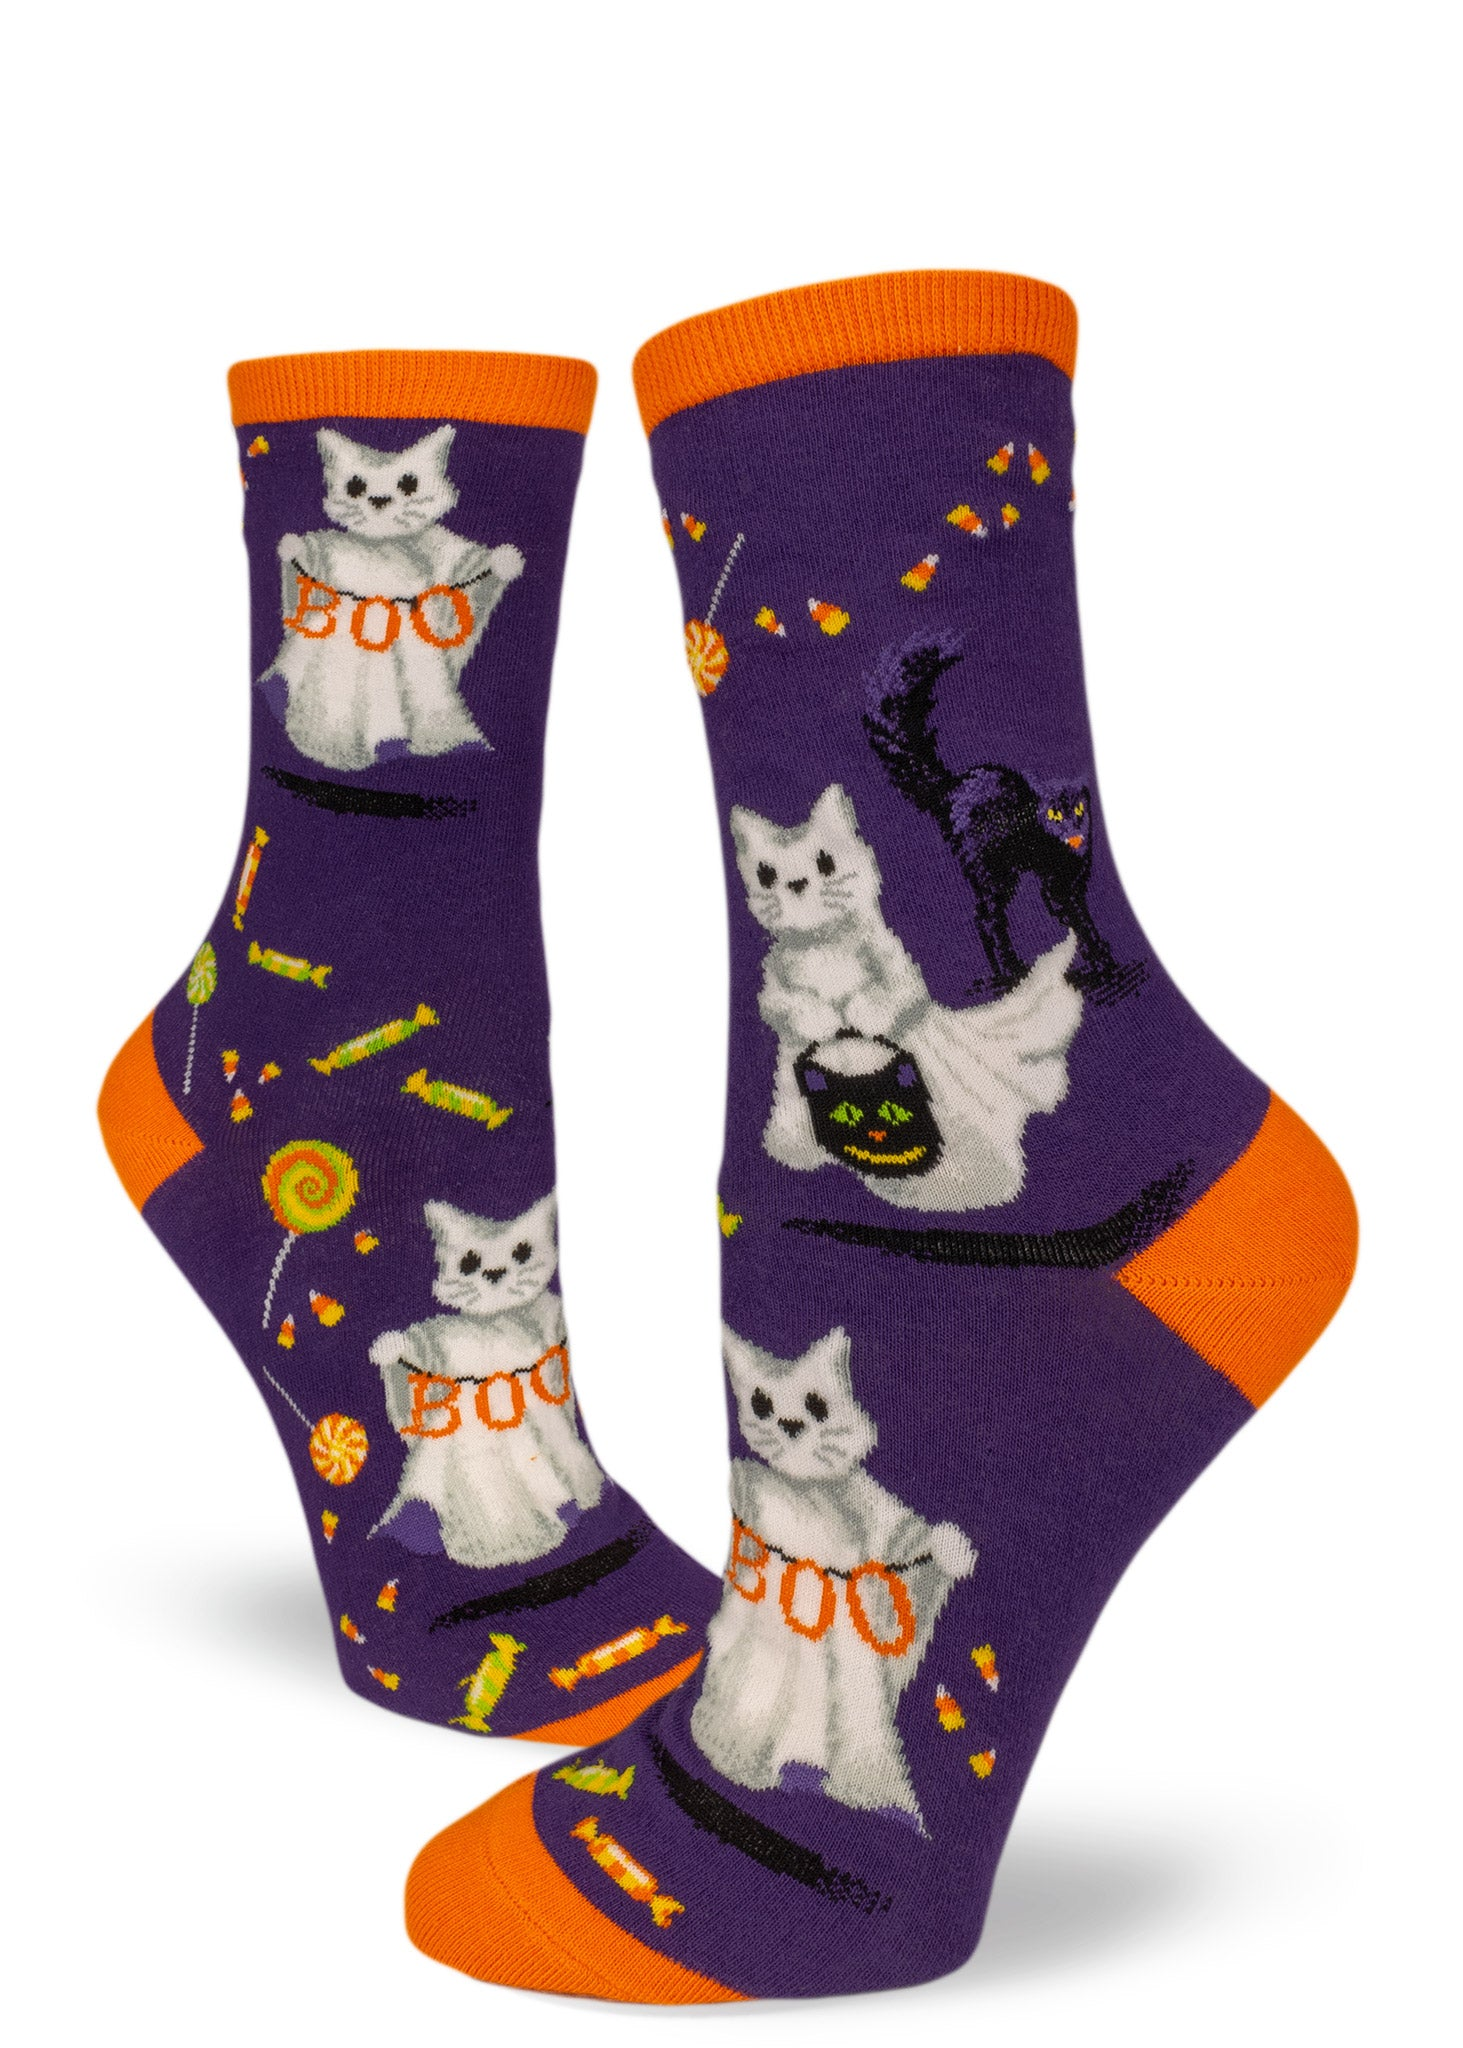 4cee0cac1 Cat ghosts trick-or-treat on Halloween socks in purple and orange.